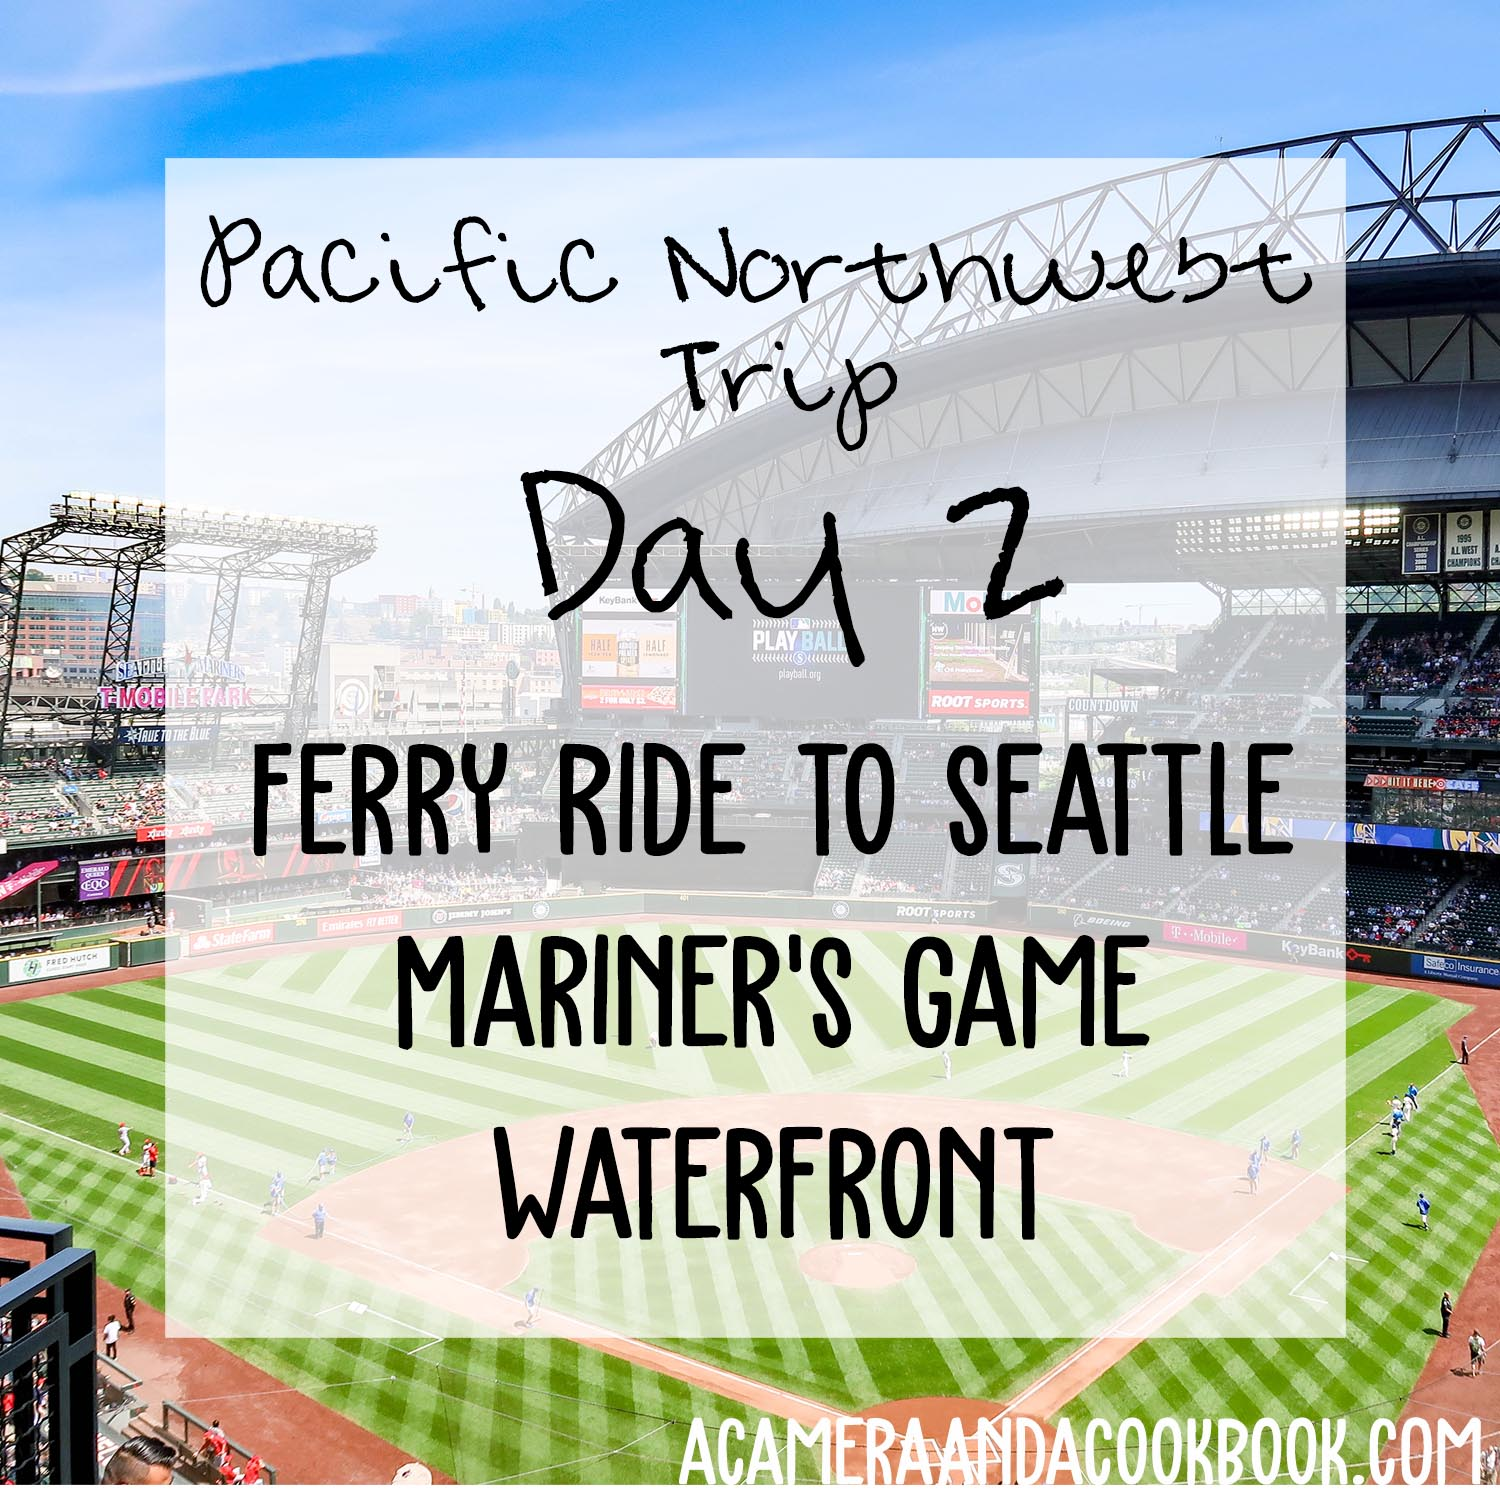 Pacific NW Trip: Day 2